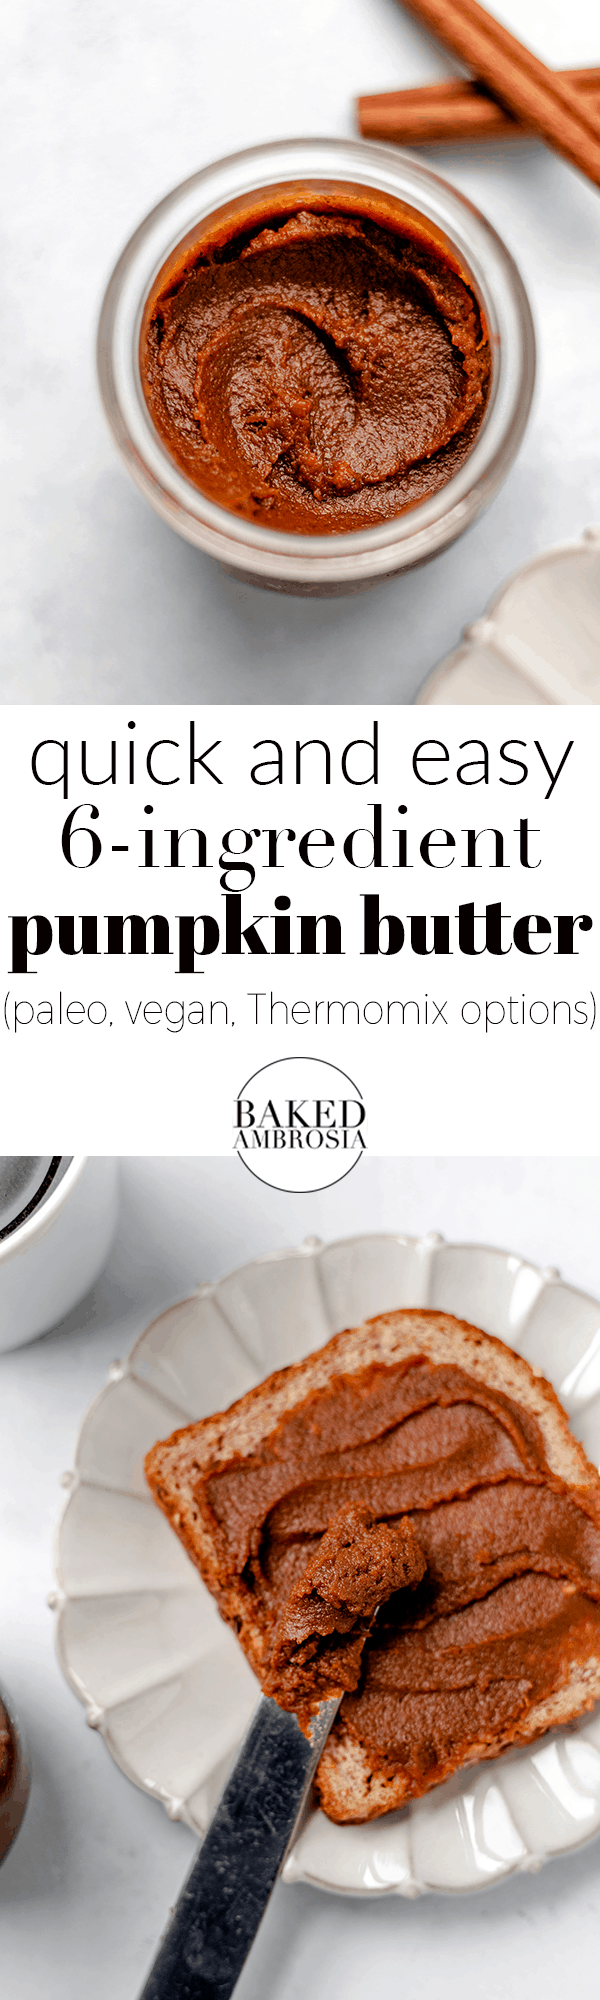 Quick and Easy 6-Ingredient Pumpkin Butter - Baked Ambrosia